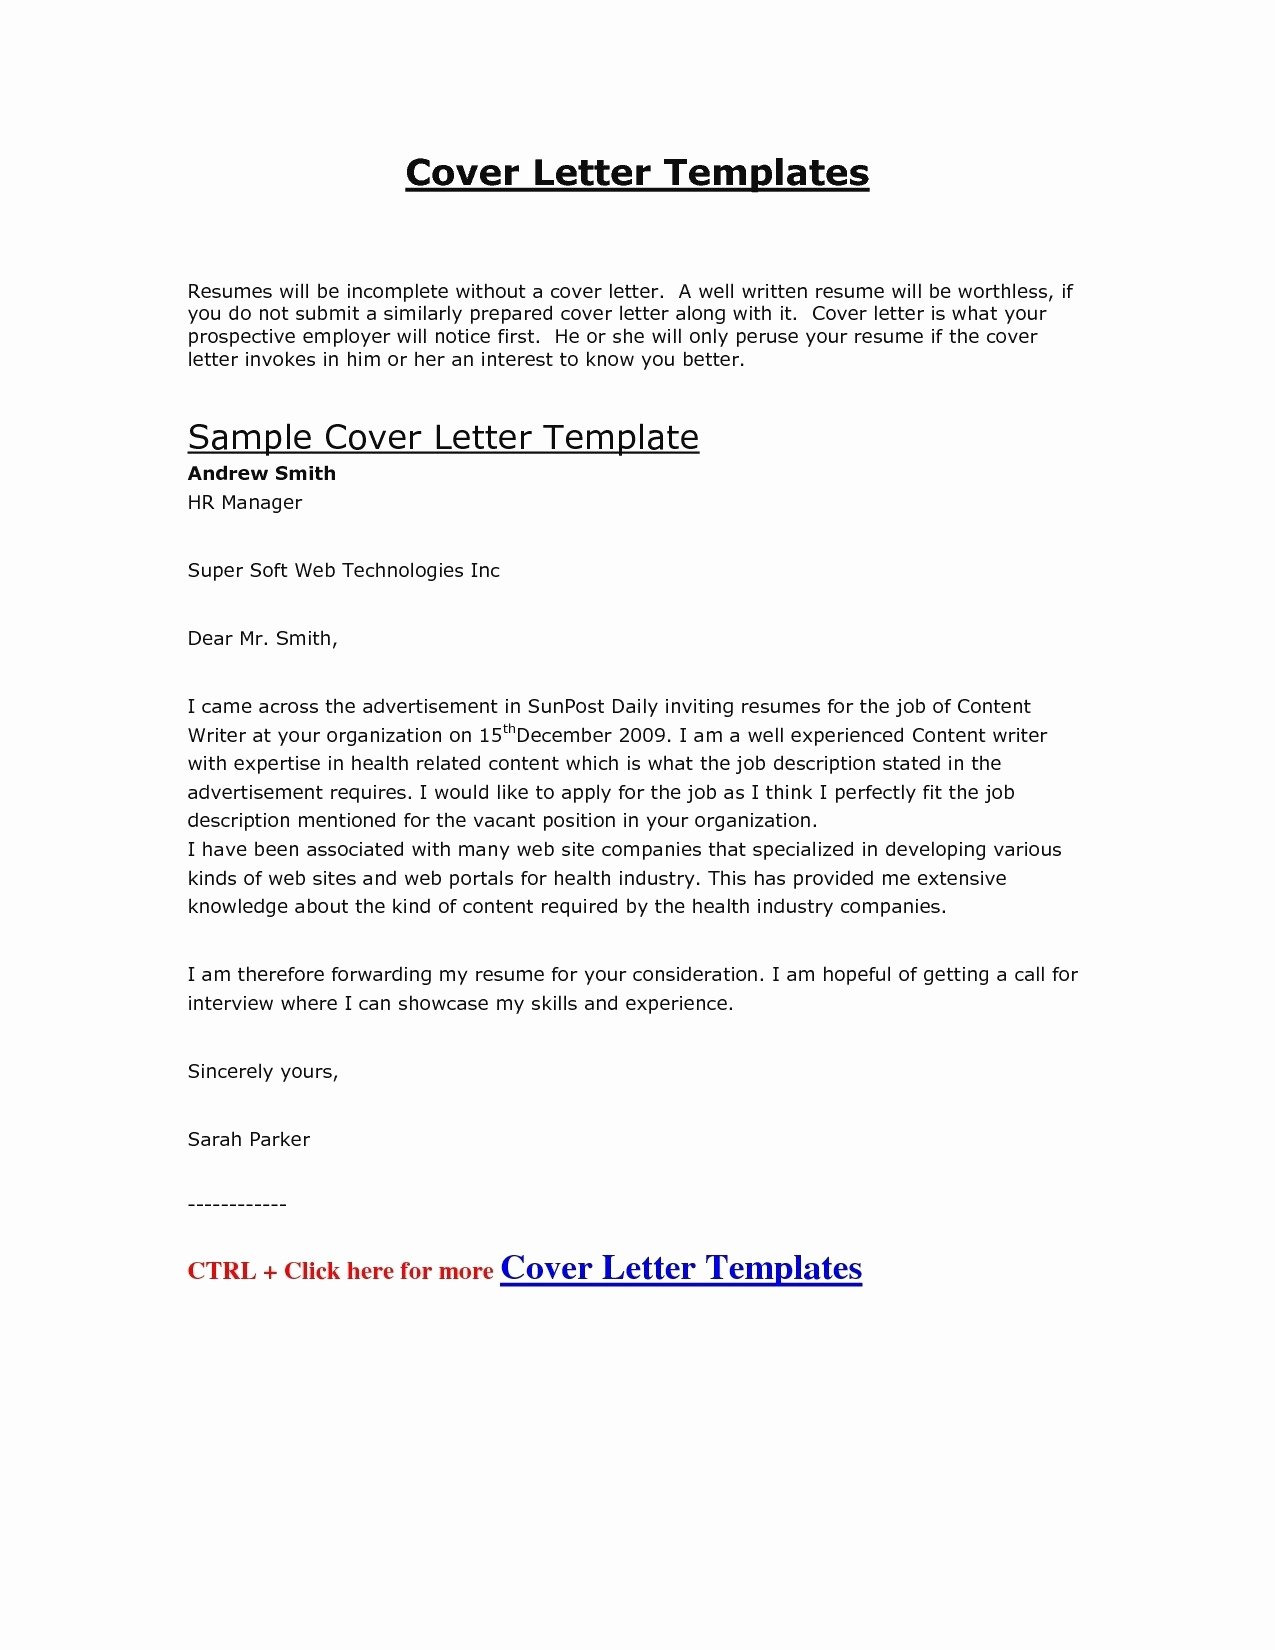 Cover Letter Template for Job Application - Good Cover Letter Examples Inspirational Job Application format